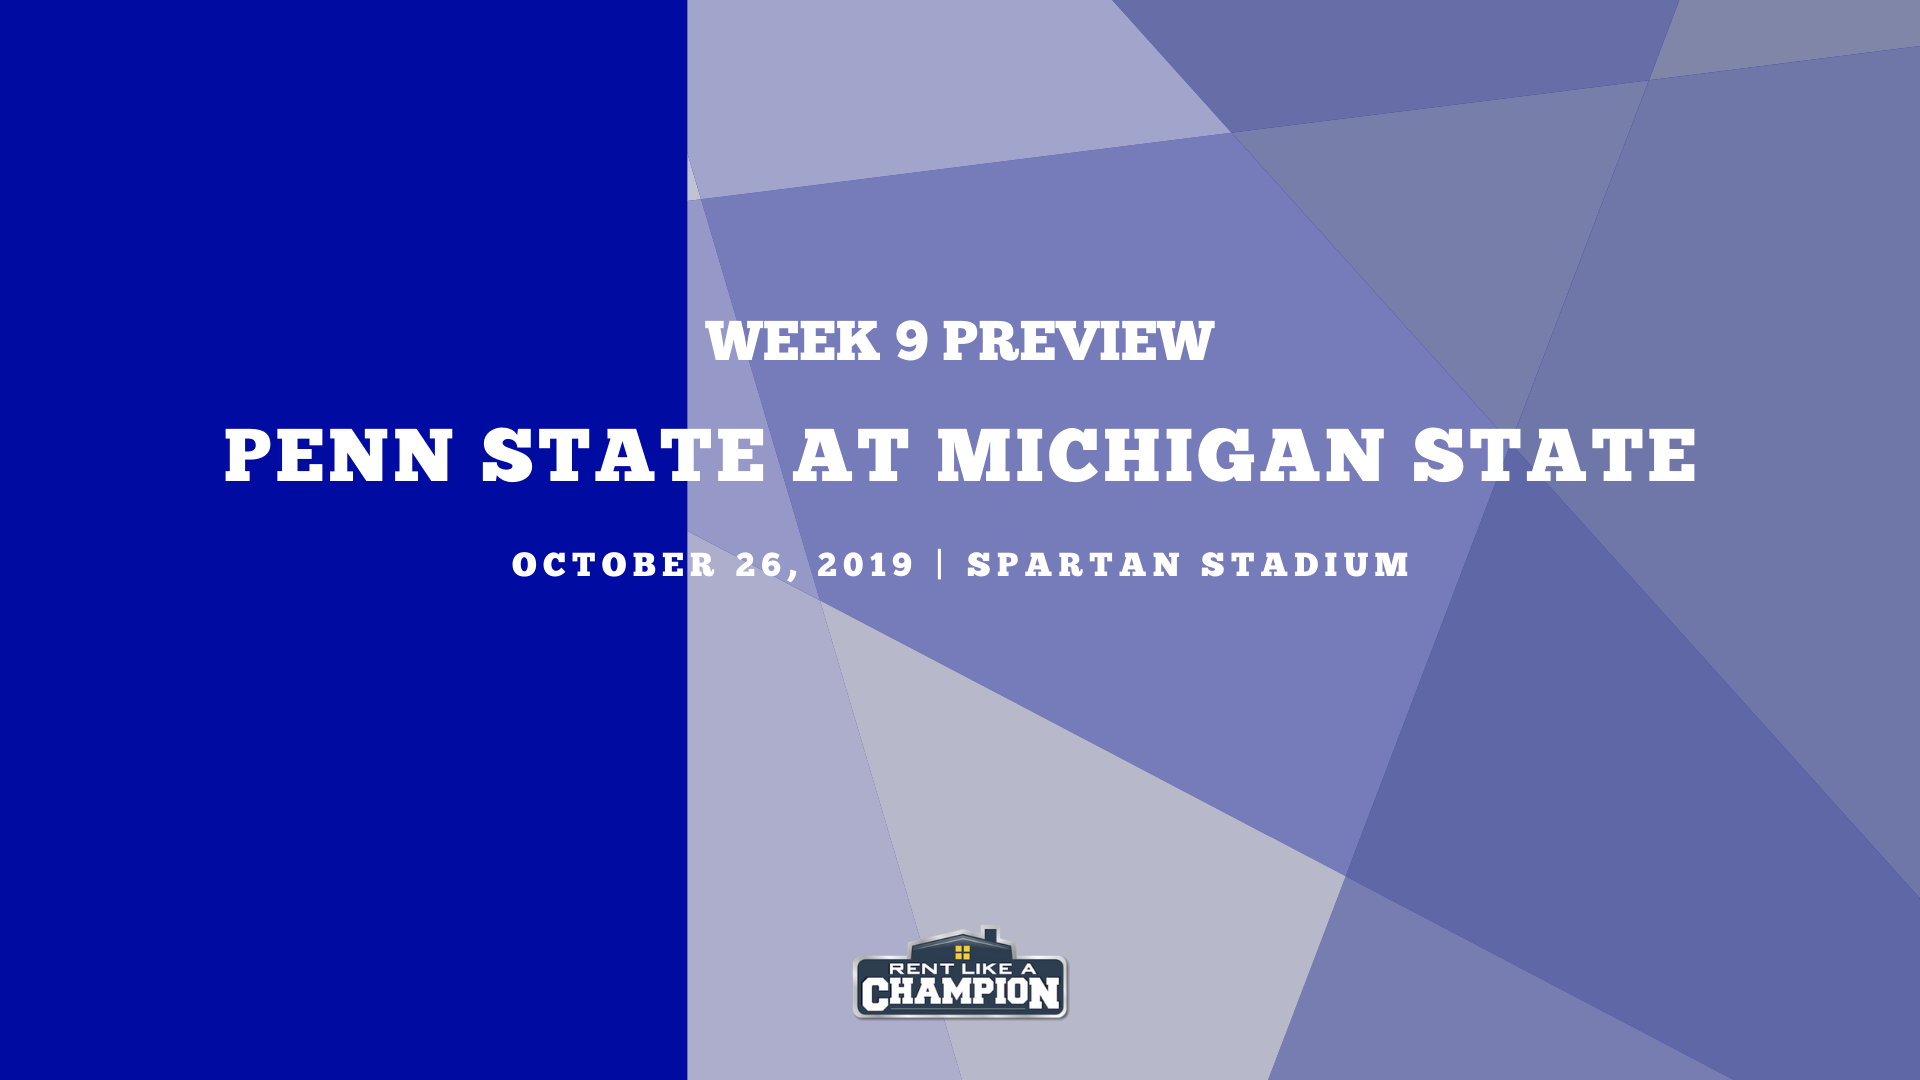 Penn State Game Preview Template (6)